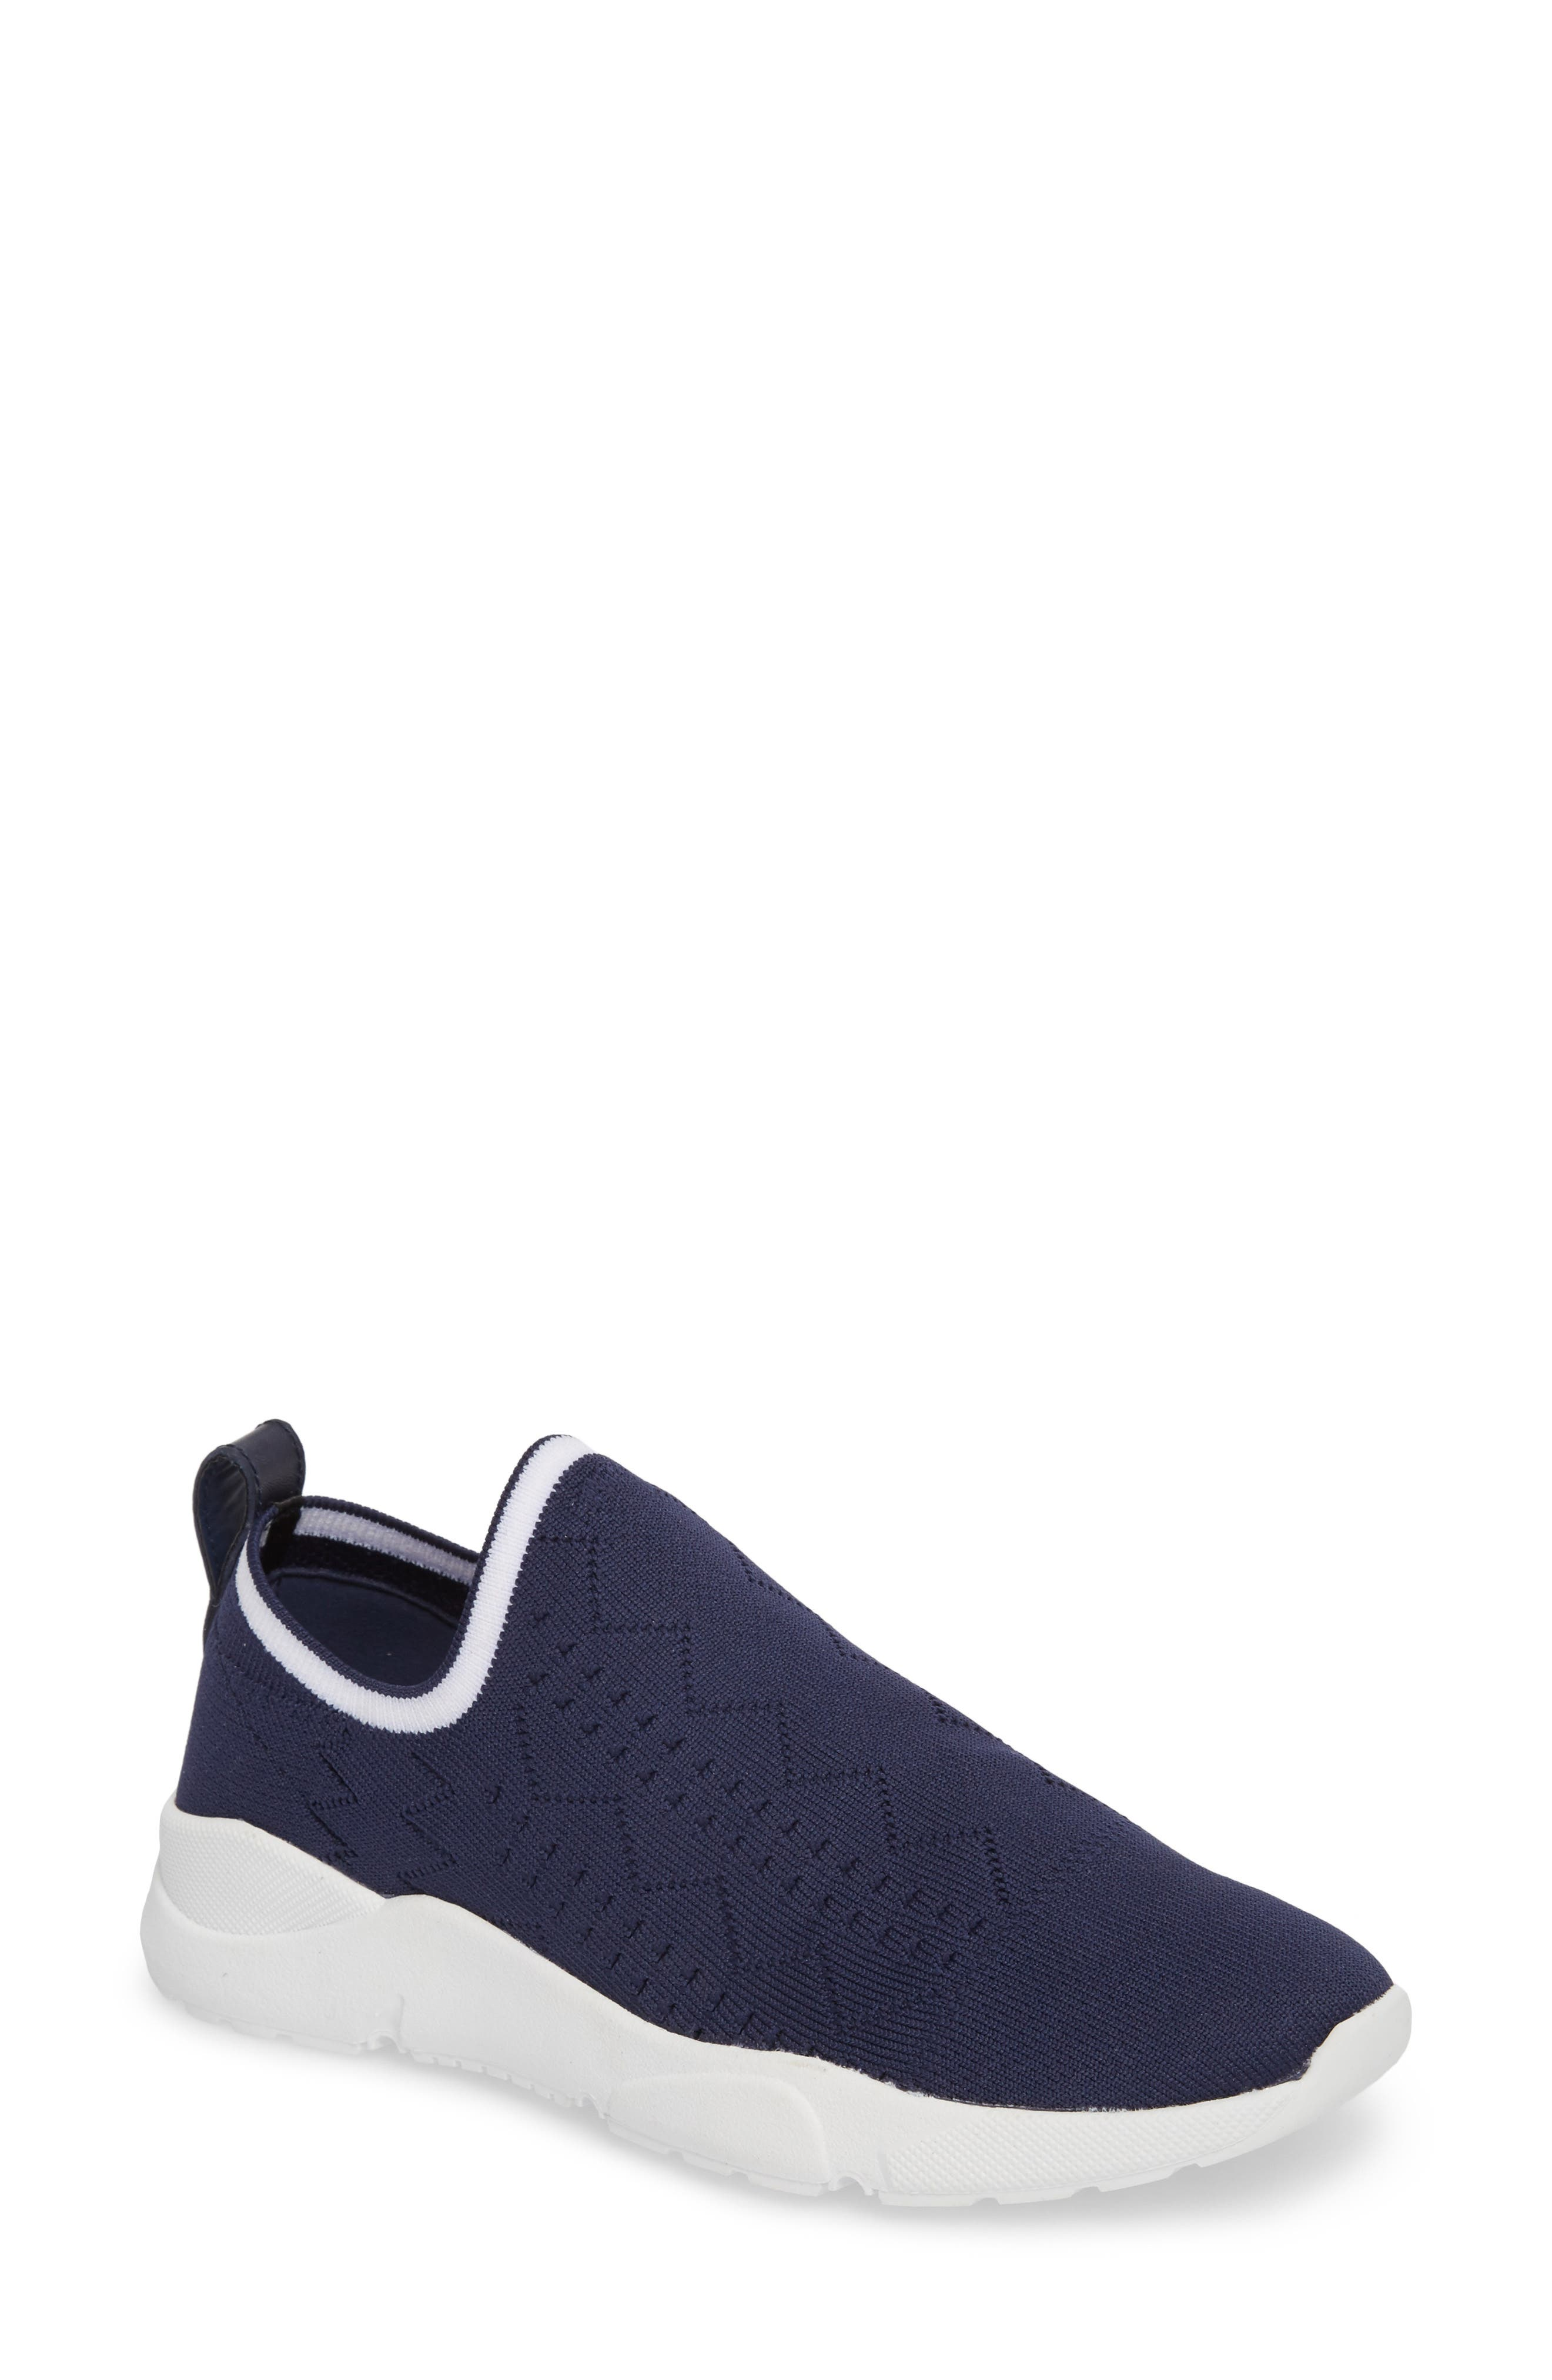 Karrie Slip-On Sneaker,                         Main,                         color, Navy Stretch Fabric